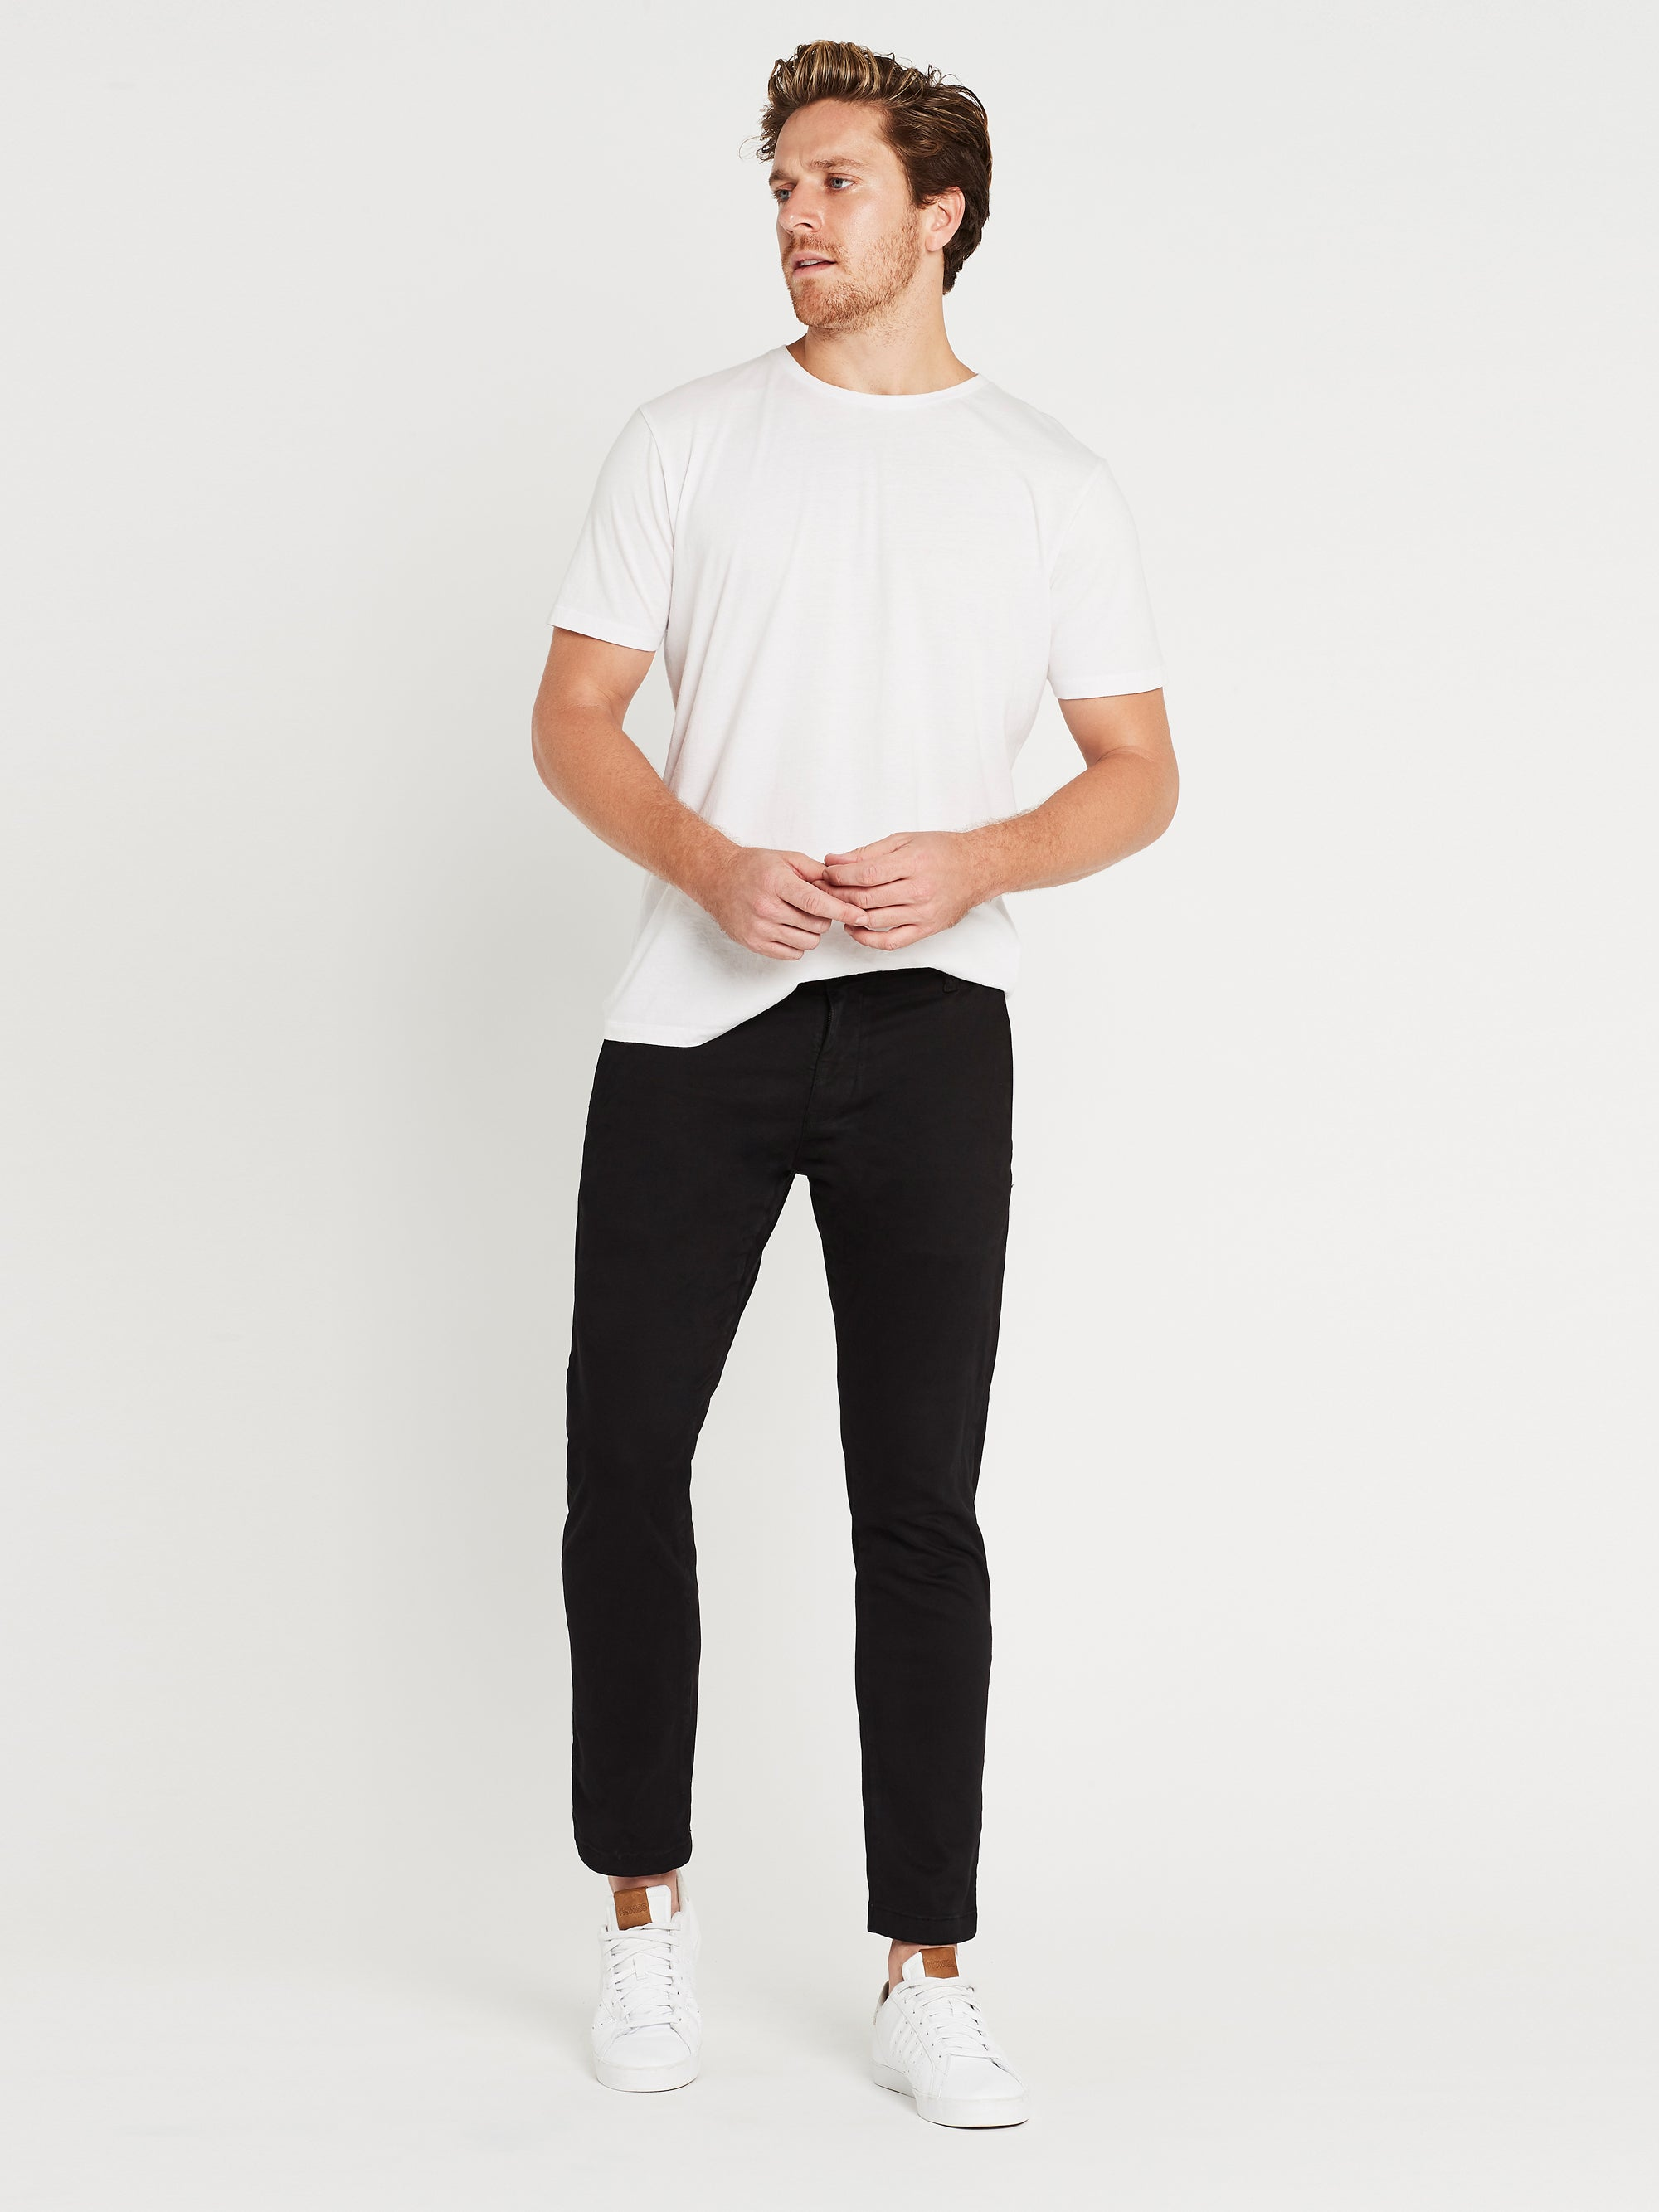 Johnny Slim Chinos Black Sateen Twill